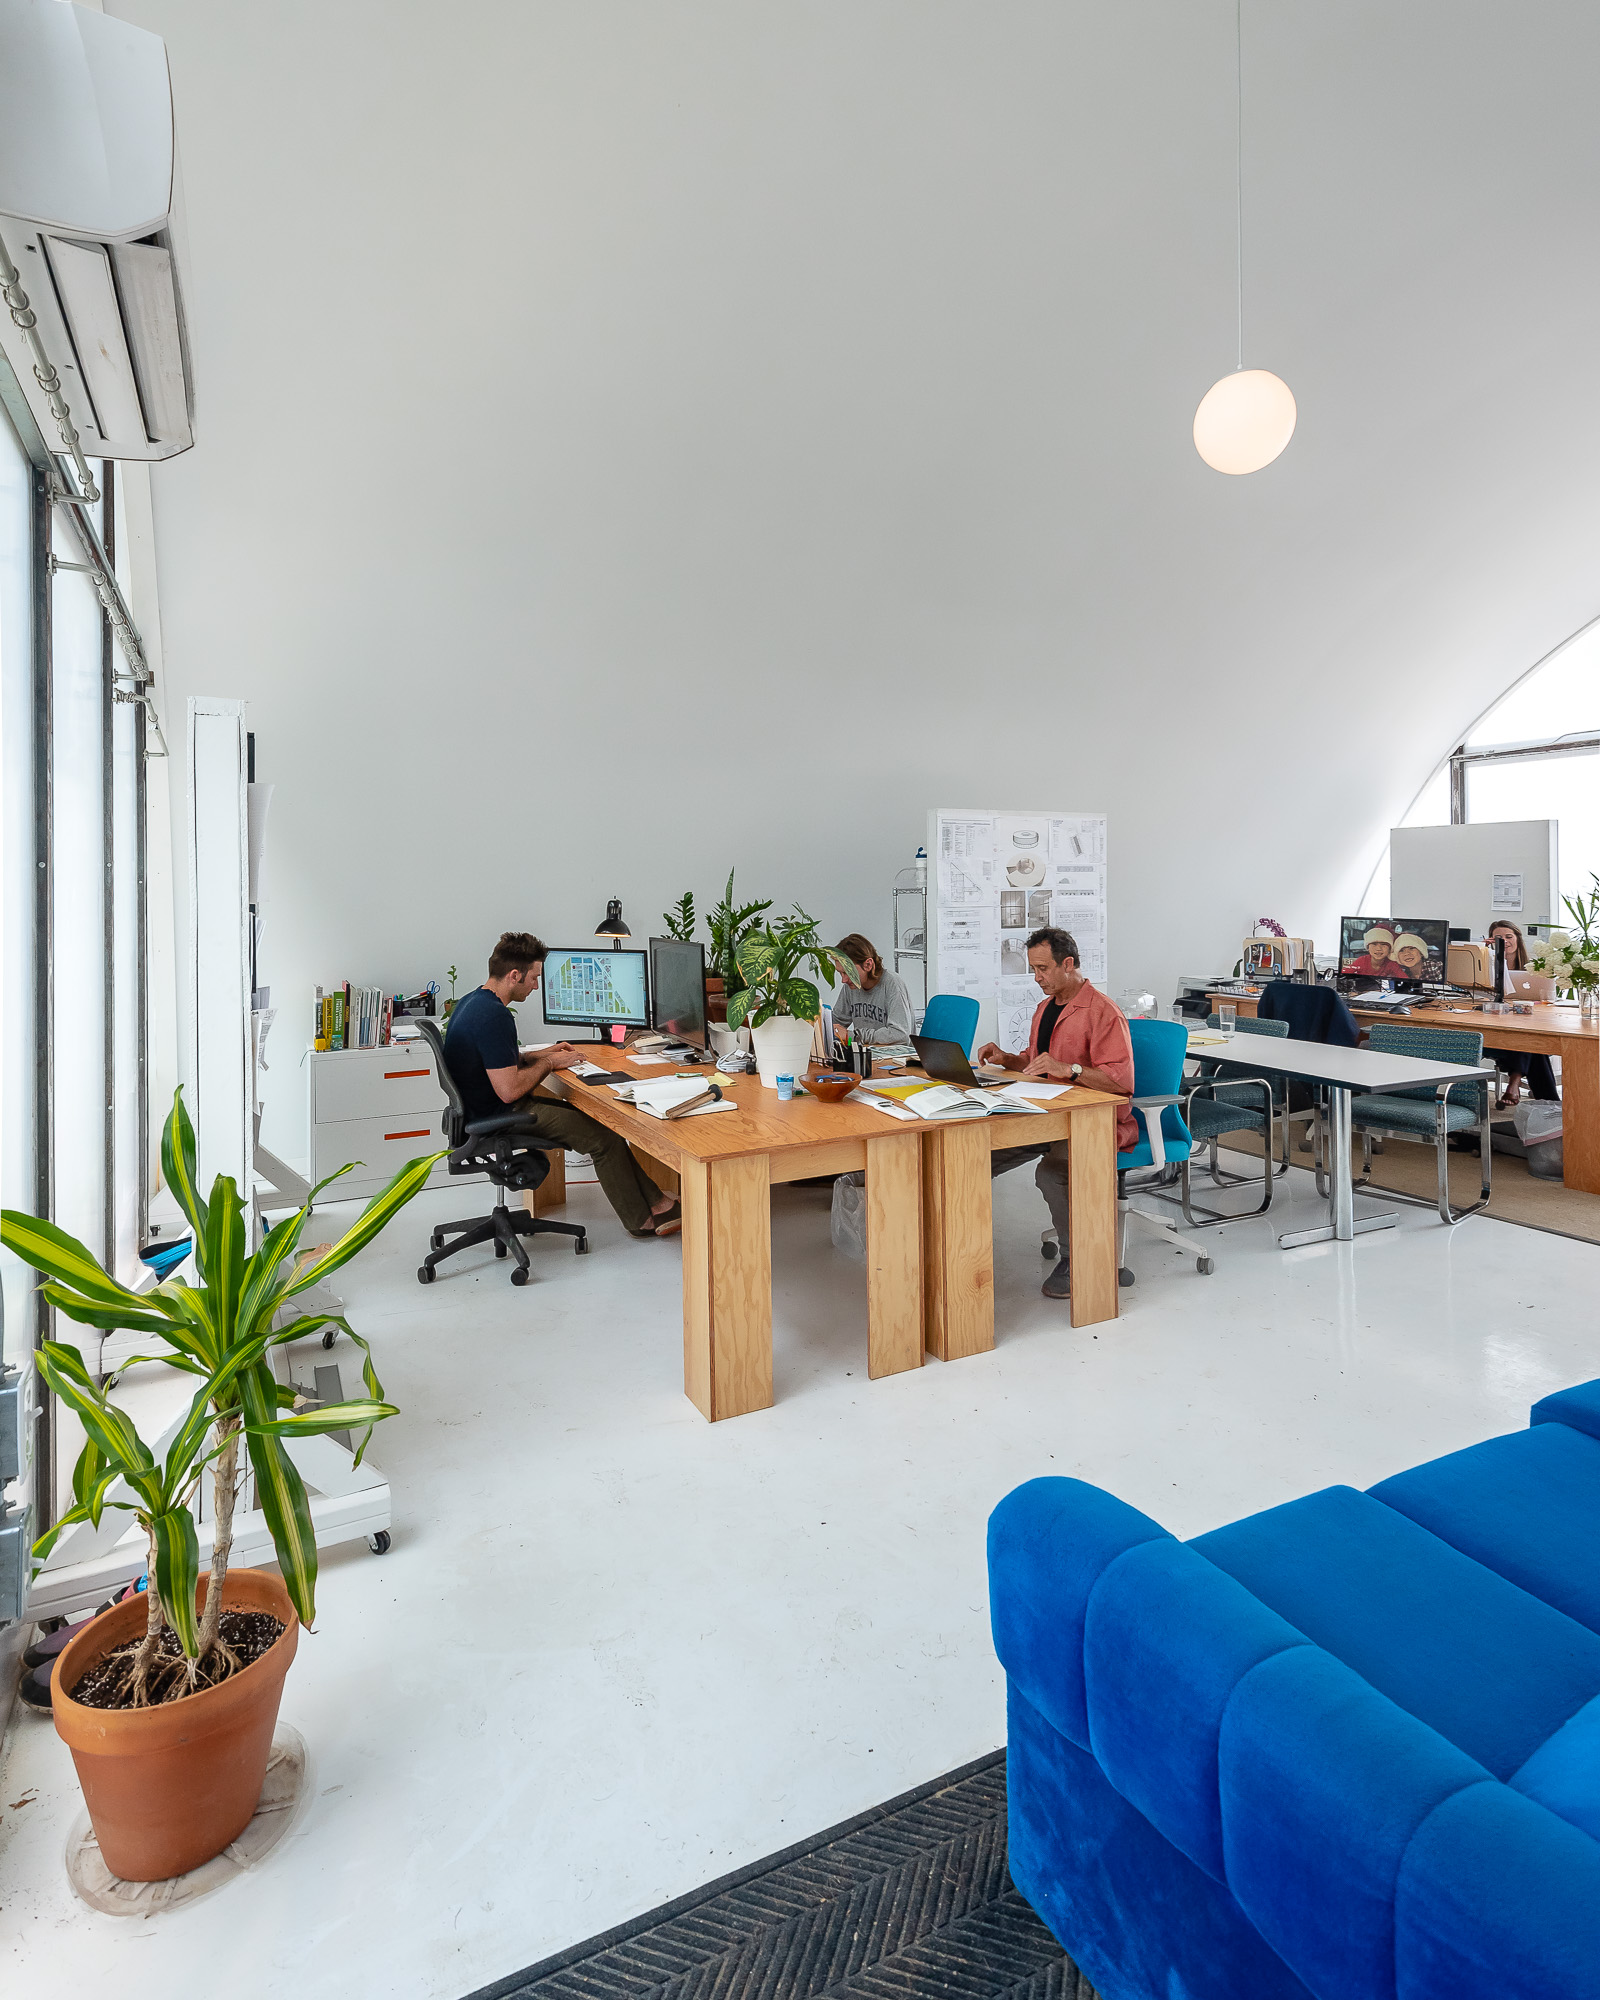 prince_concepts_office_hut_spring-23.jpg